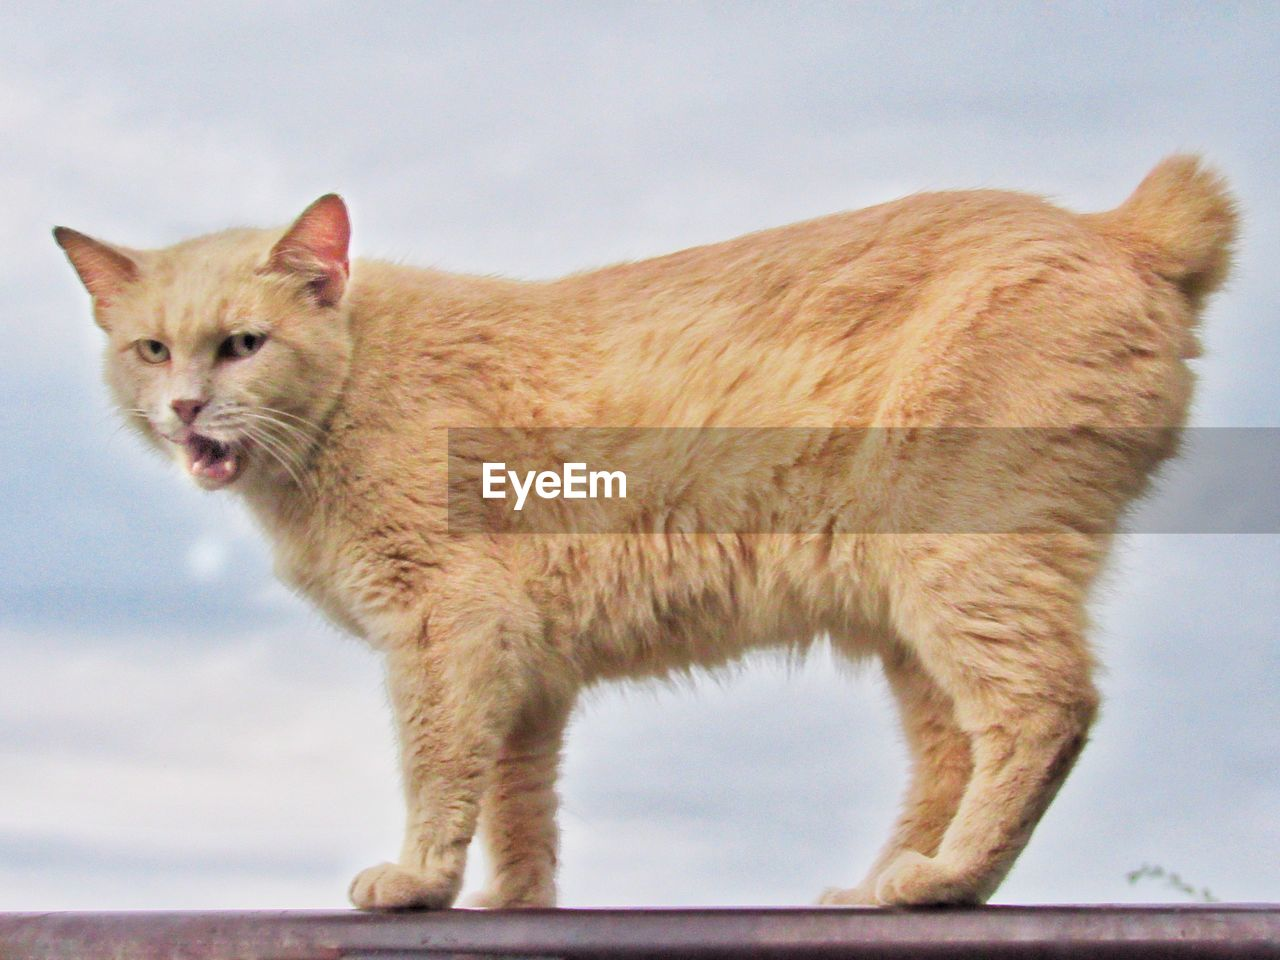 animal, mammal, animal themes, feline, one animal, domestic, cat, domestic animals, pets, domestic cat, vertebrate, no people, side view, sky, standing, nature, outdoors, day, focus on foreground, close-up, mouth open, whisker, ginger cat